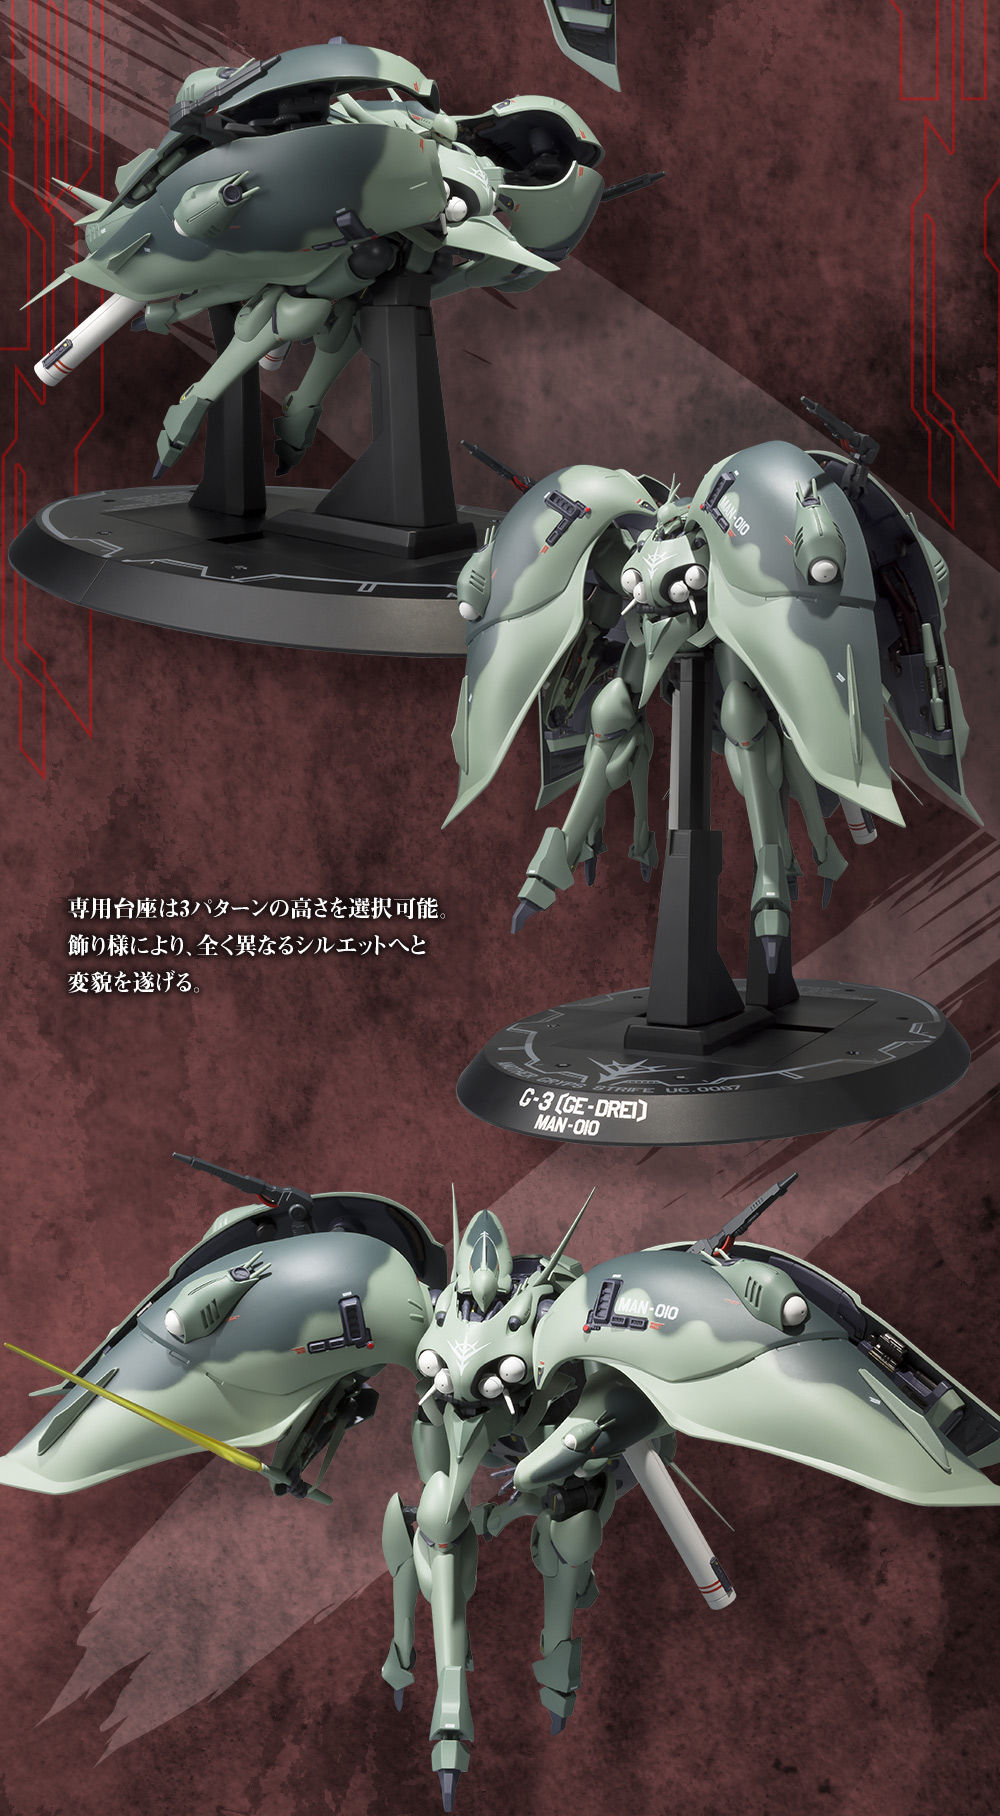 Robot Spirits (SIDE MS) MAN-010 G-3 (Ge-Drei) (February & March Ship Date)